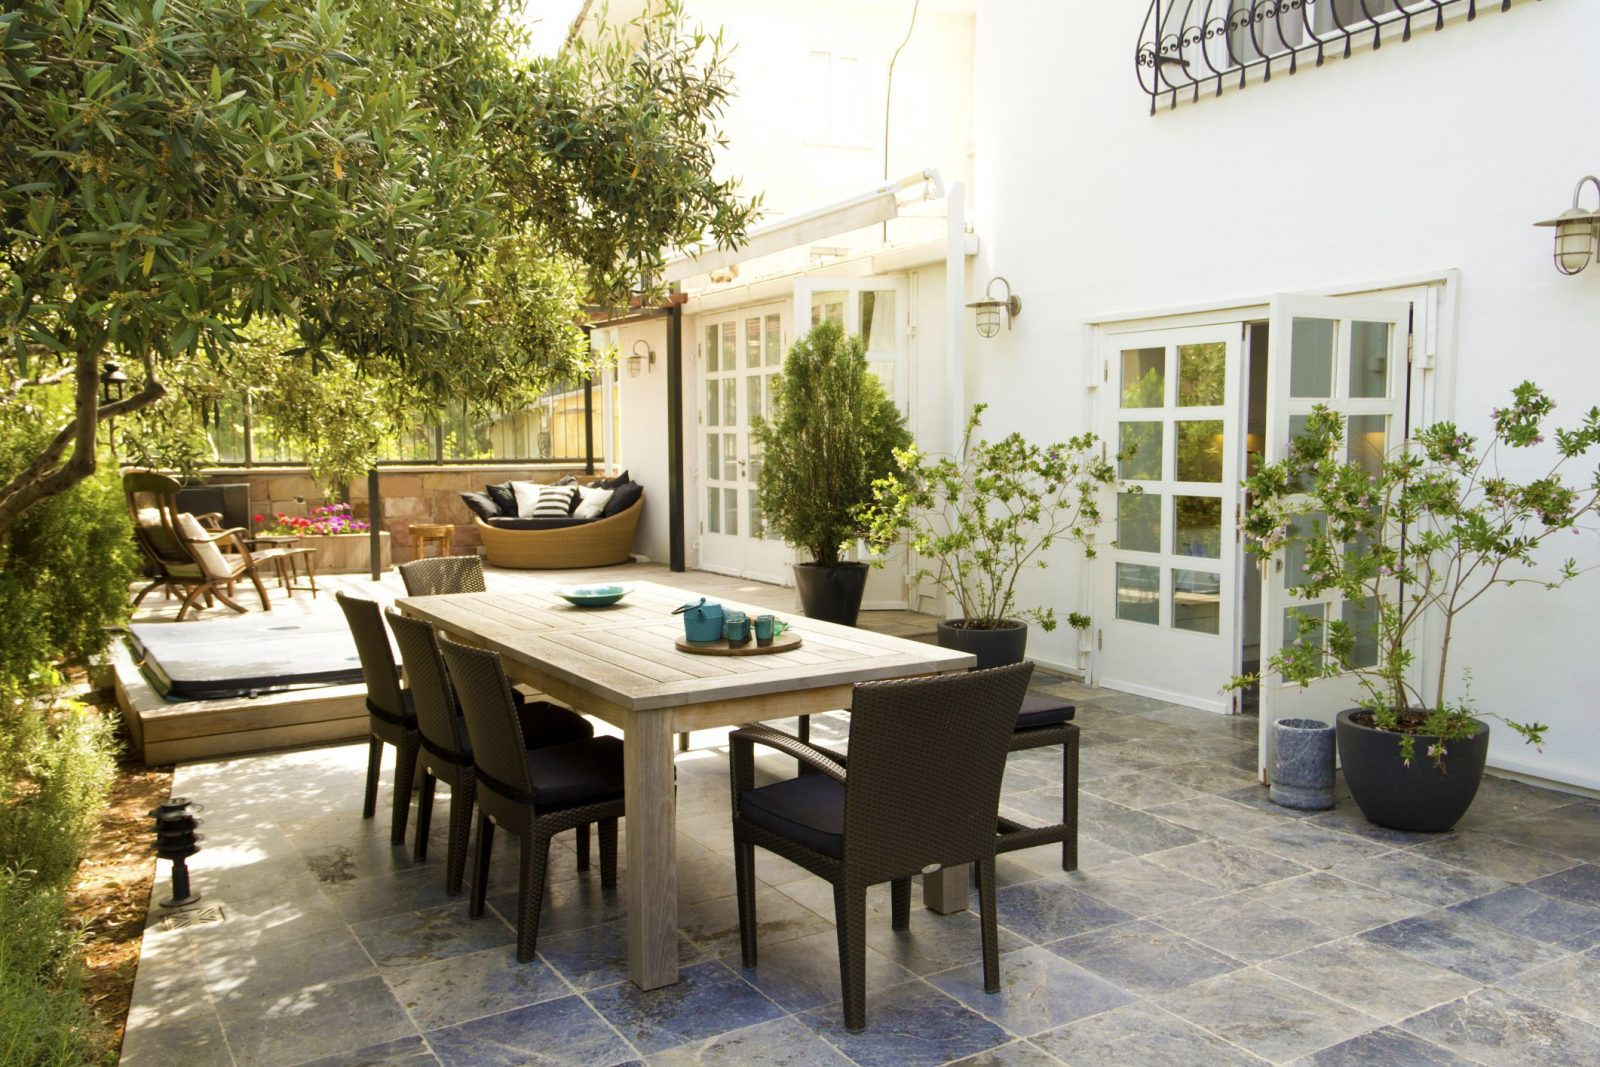 How To Spice Up Your Outdoor Space